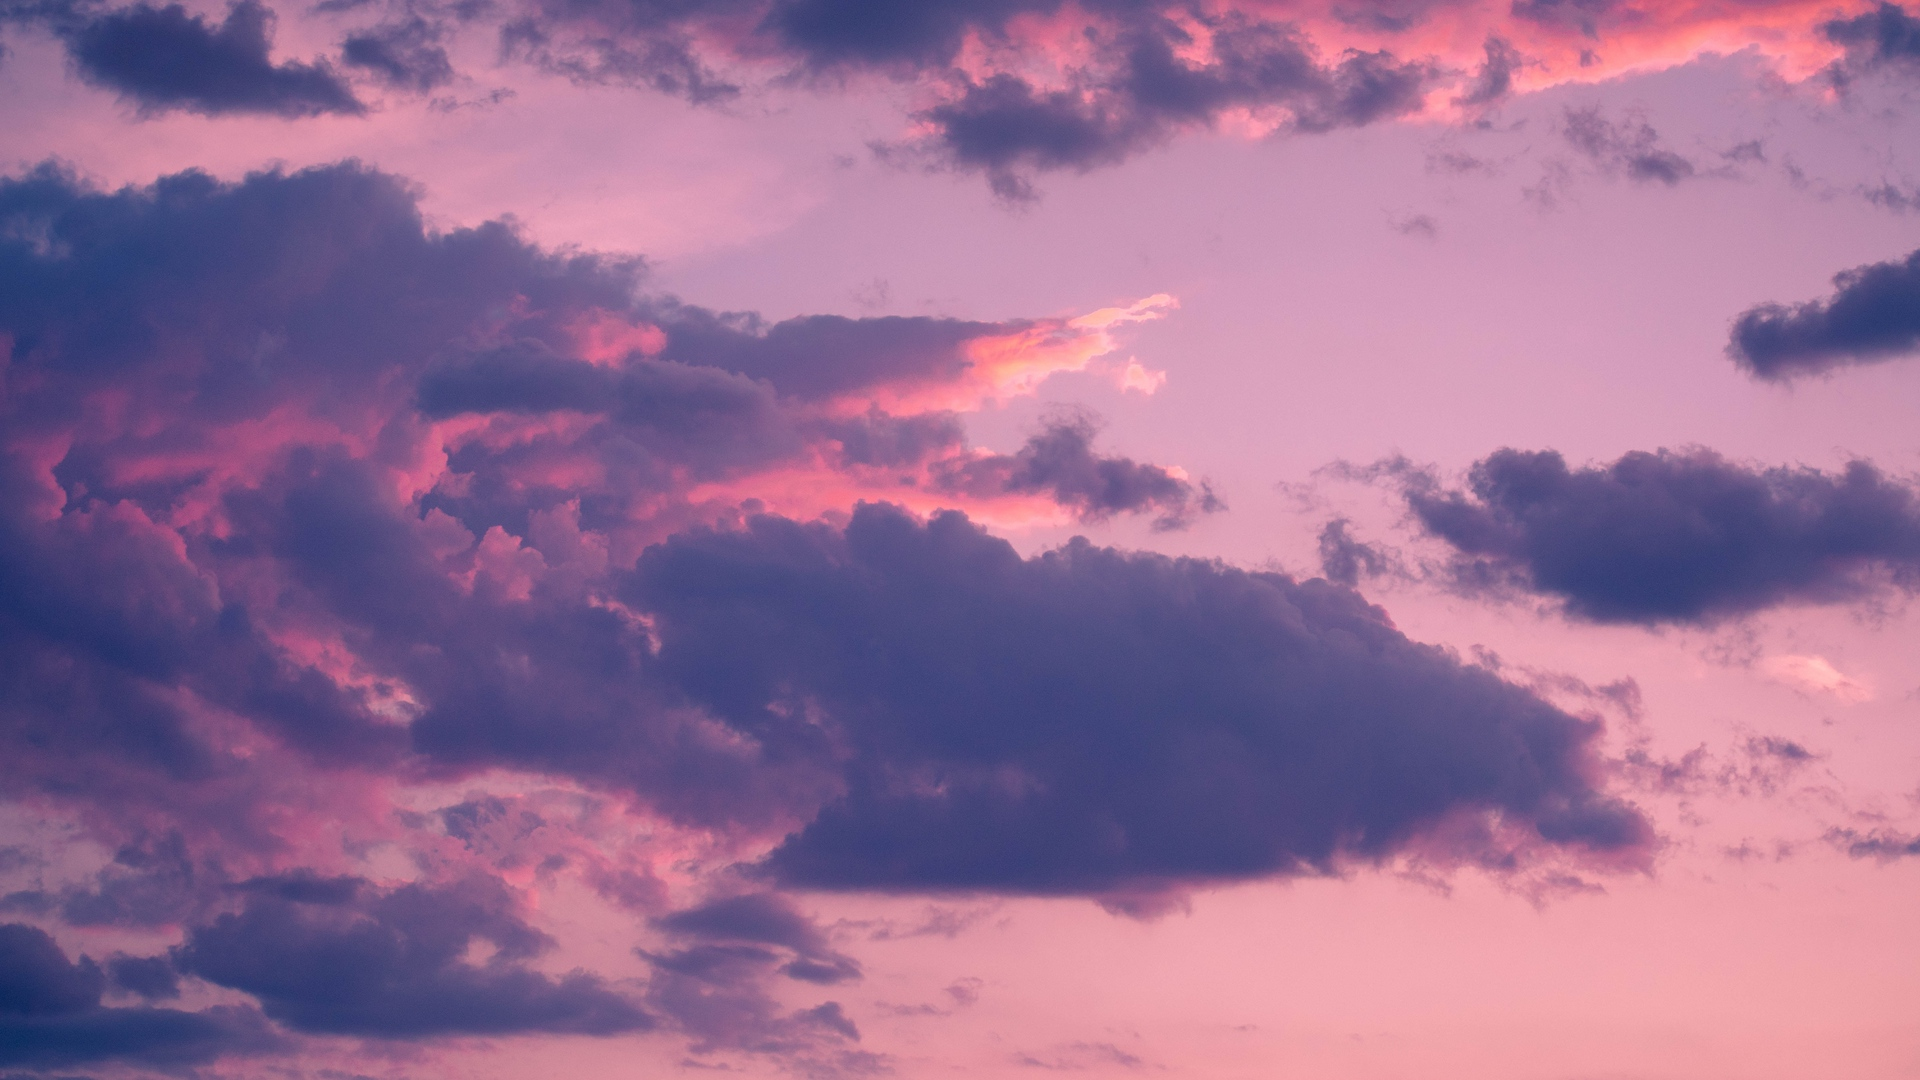 General 1920x1080 nature clouds sky sunset pink pink clouds Ernest Brillo